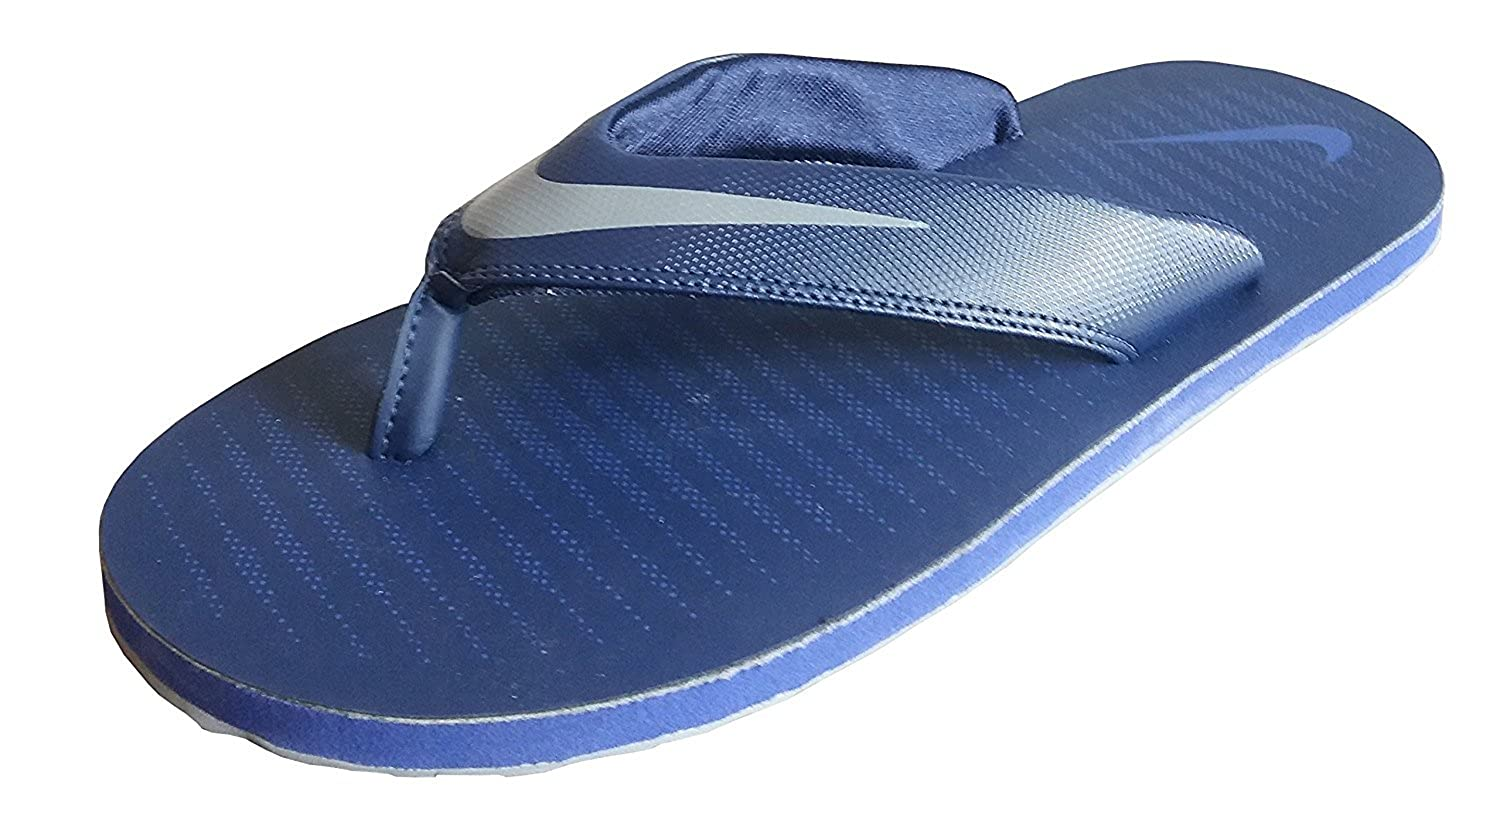 a6b651d2fc8 Nike Men s Chroma 5 Binary Blue Flip Flops Thong Sandals-8 UK India  (42.5EU) (833808-404)  Buy Online at Low Prices in India - Amazon.in